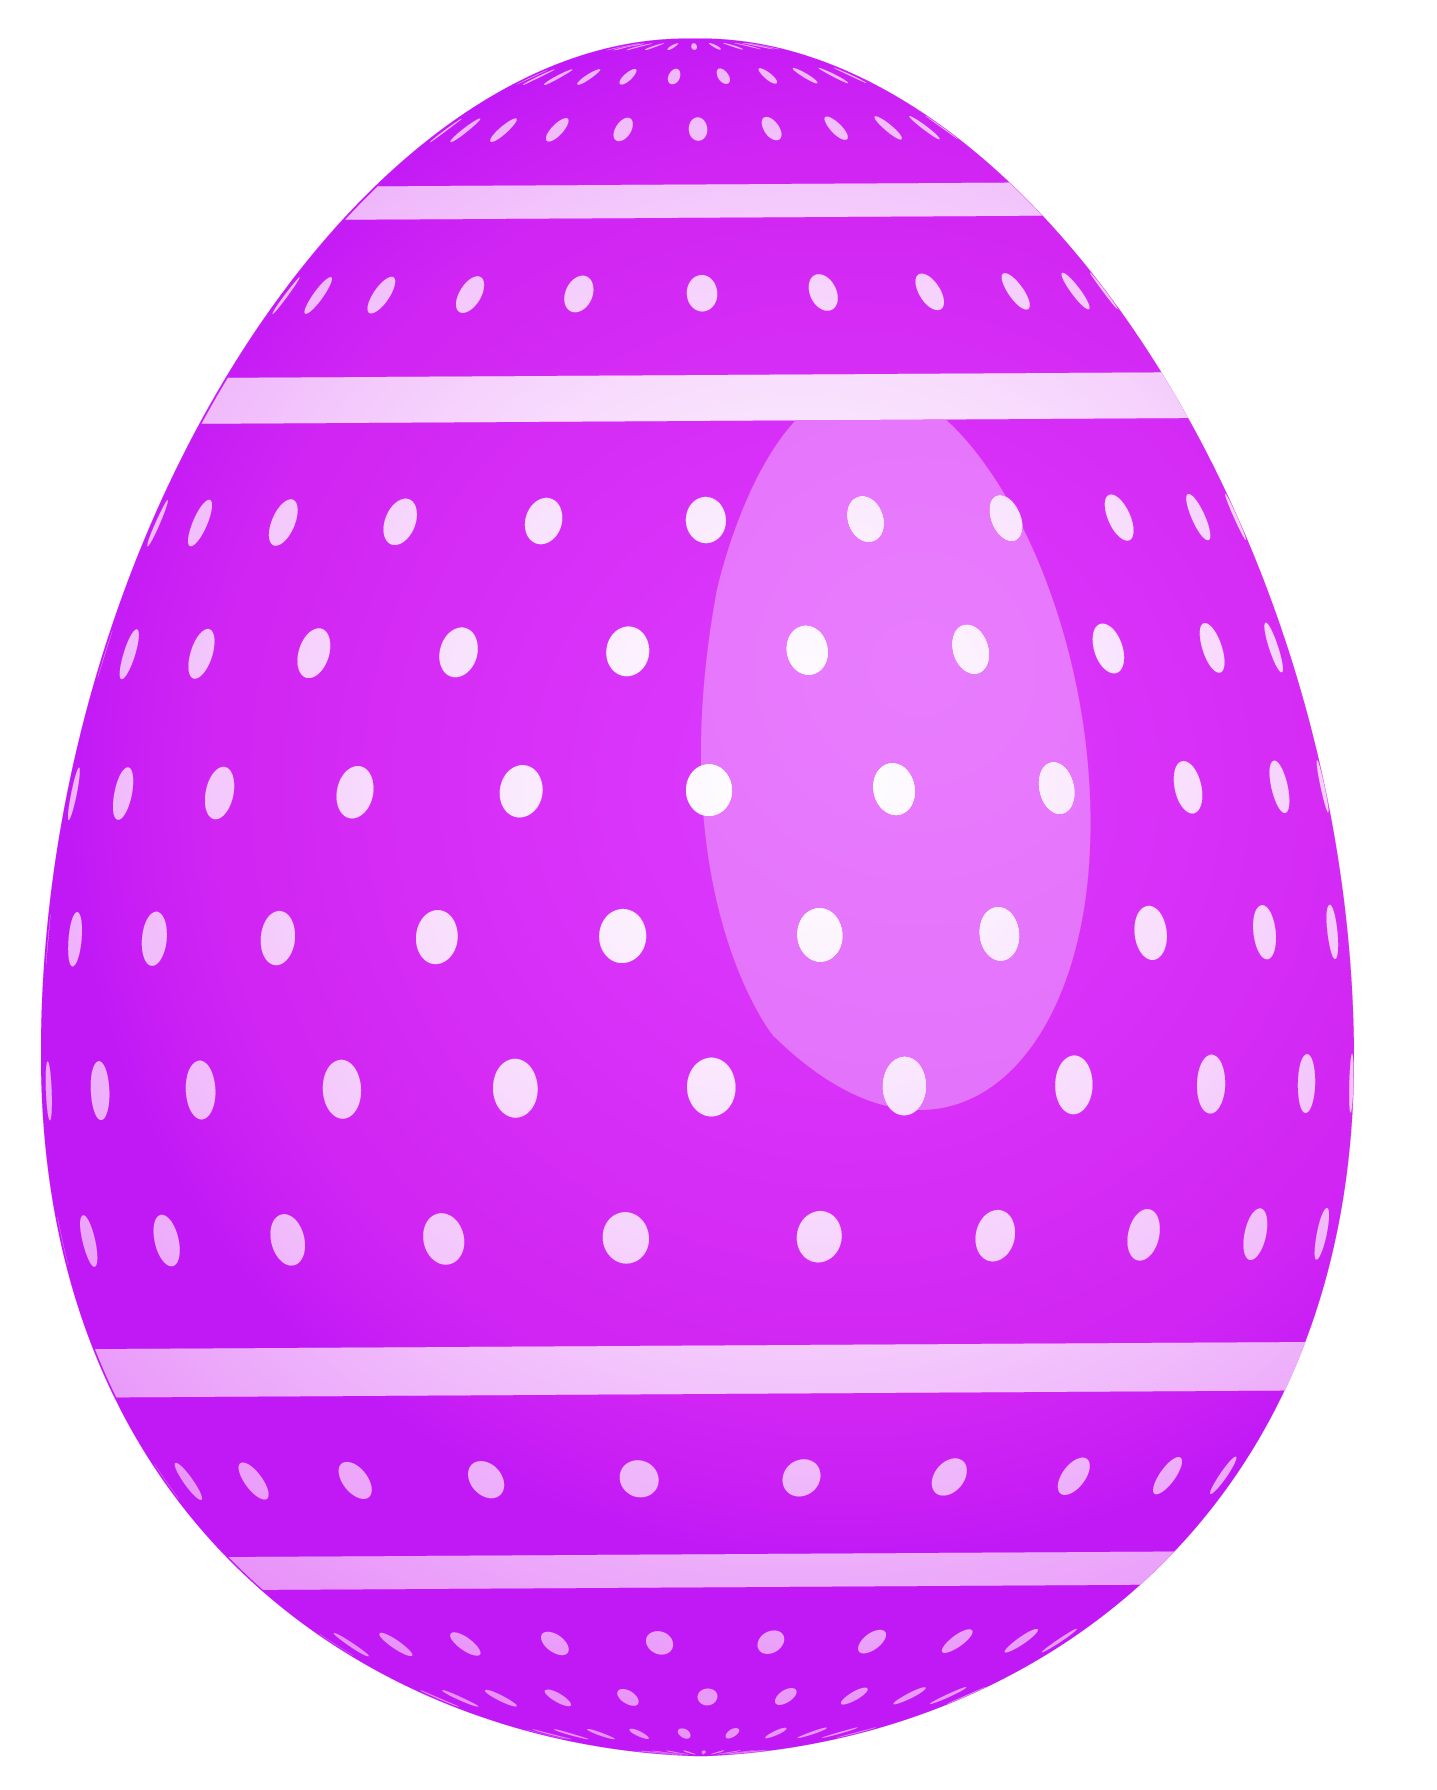 Purple easter egg clipart vector stock Purple easter egg clipart - ClipartFest vector stock